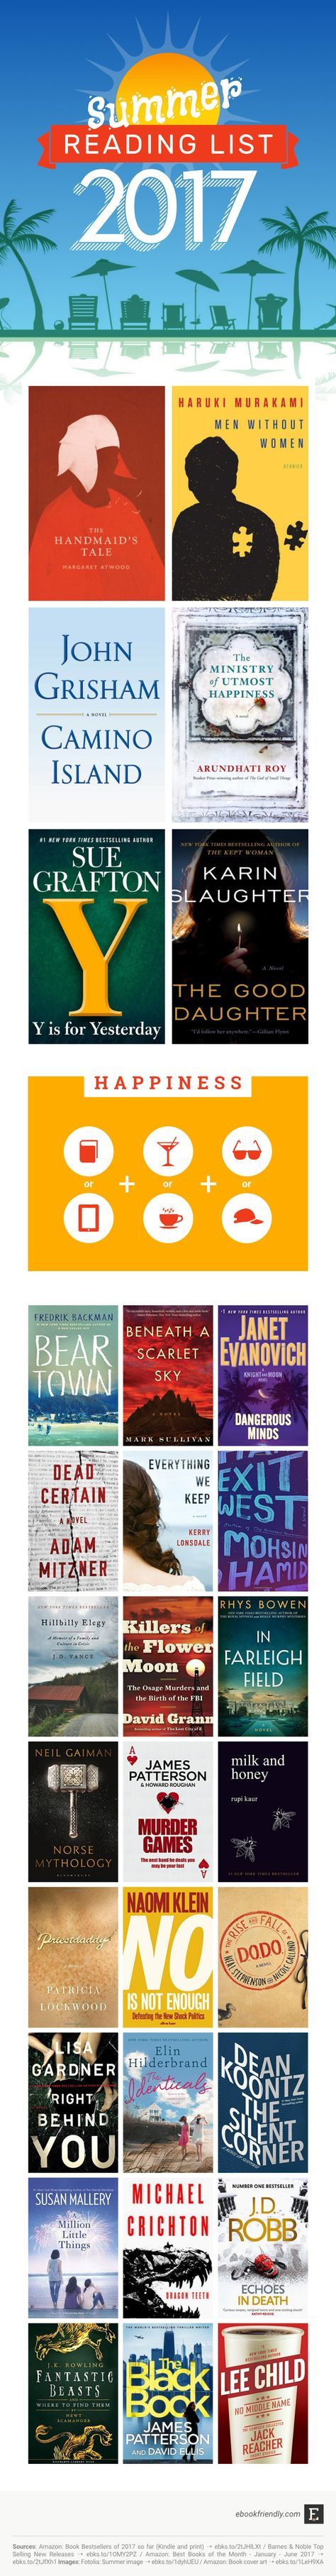 Getting ready for summer 2017? Make sure to take with you the books by Margaret Atwood, Haruki Murakami, John Grisham, Sue Grafton, and more!